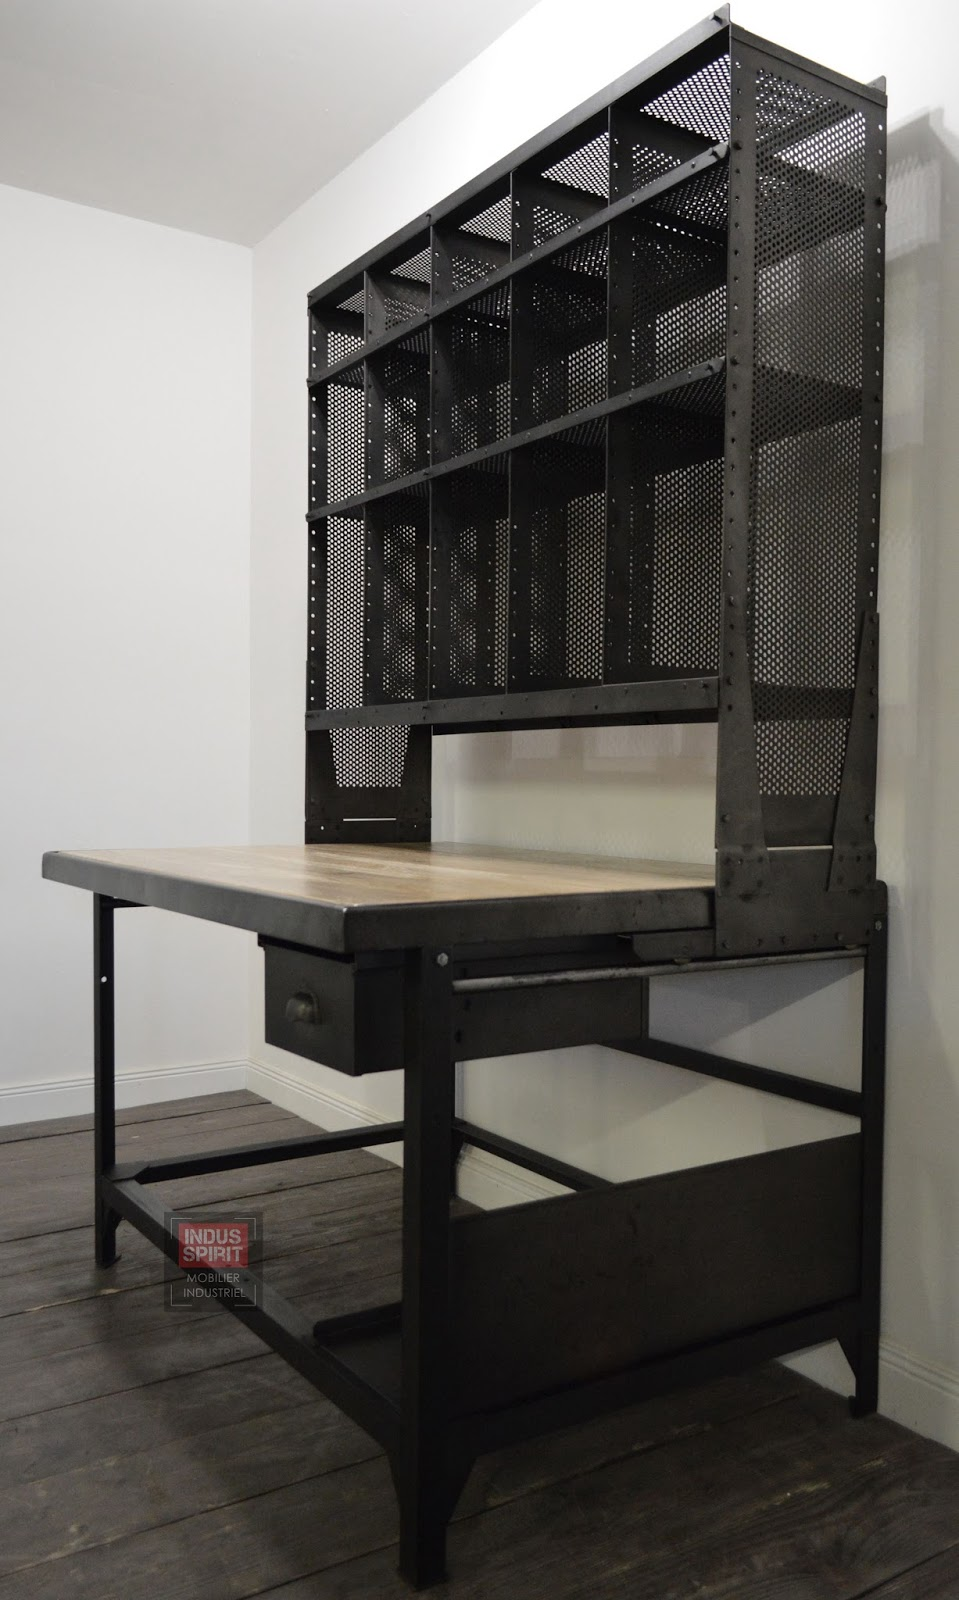 meuble industriel mobilier industriel design industriel style industriel indus spirit. Black Bedroom Furniture Sets. Home Design Ideas